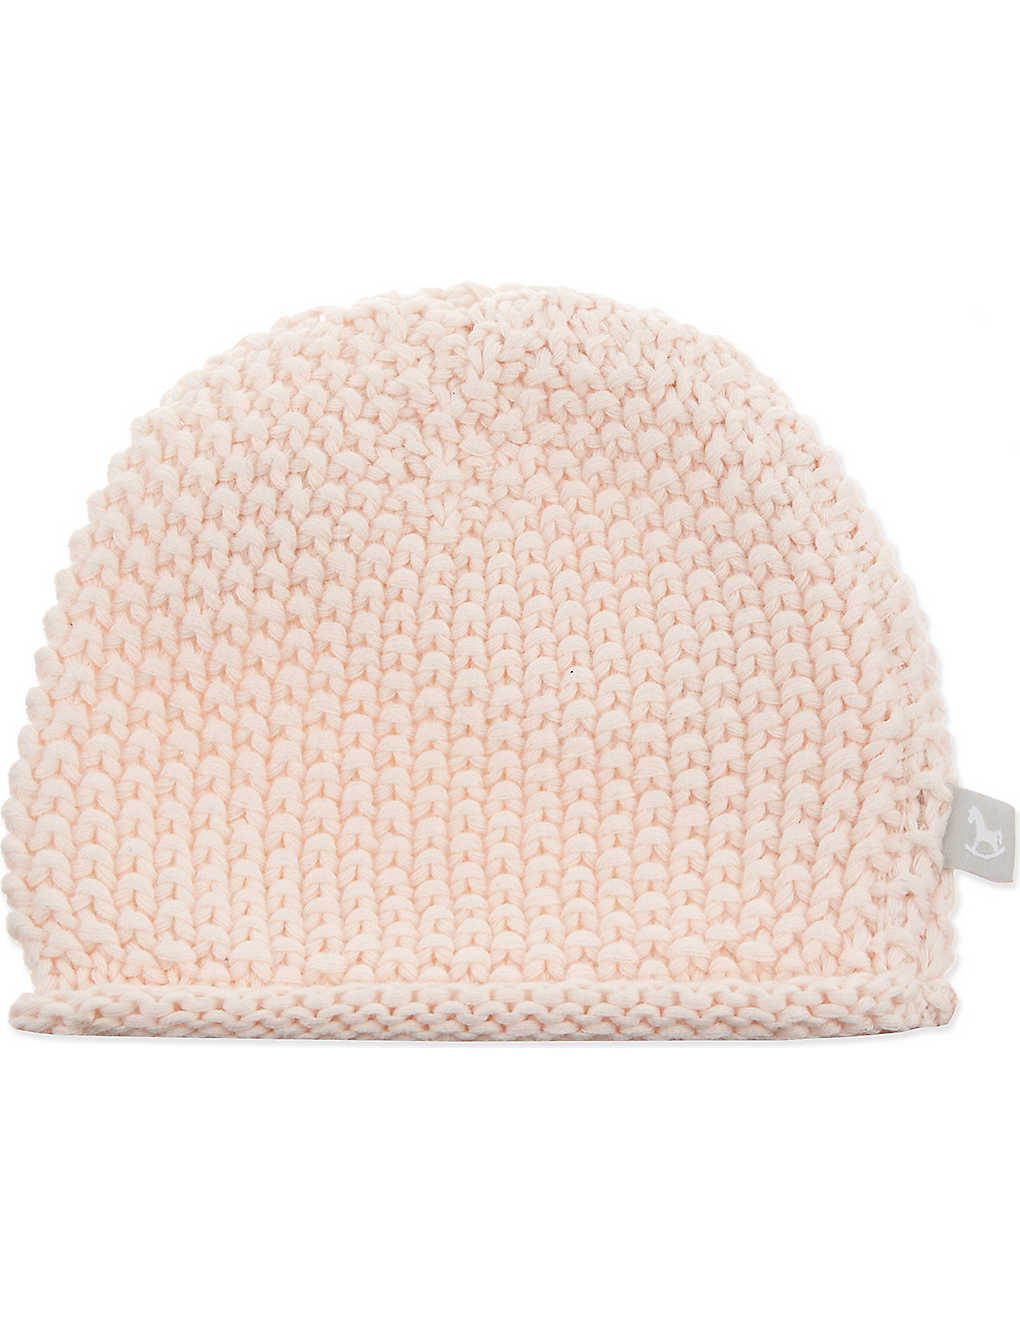 THE LITTLE TAILOR: Bobble stitch hat 0-6 months